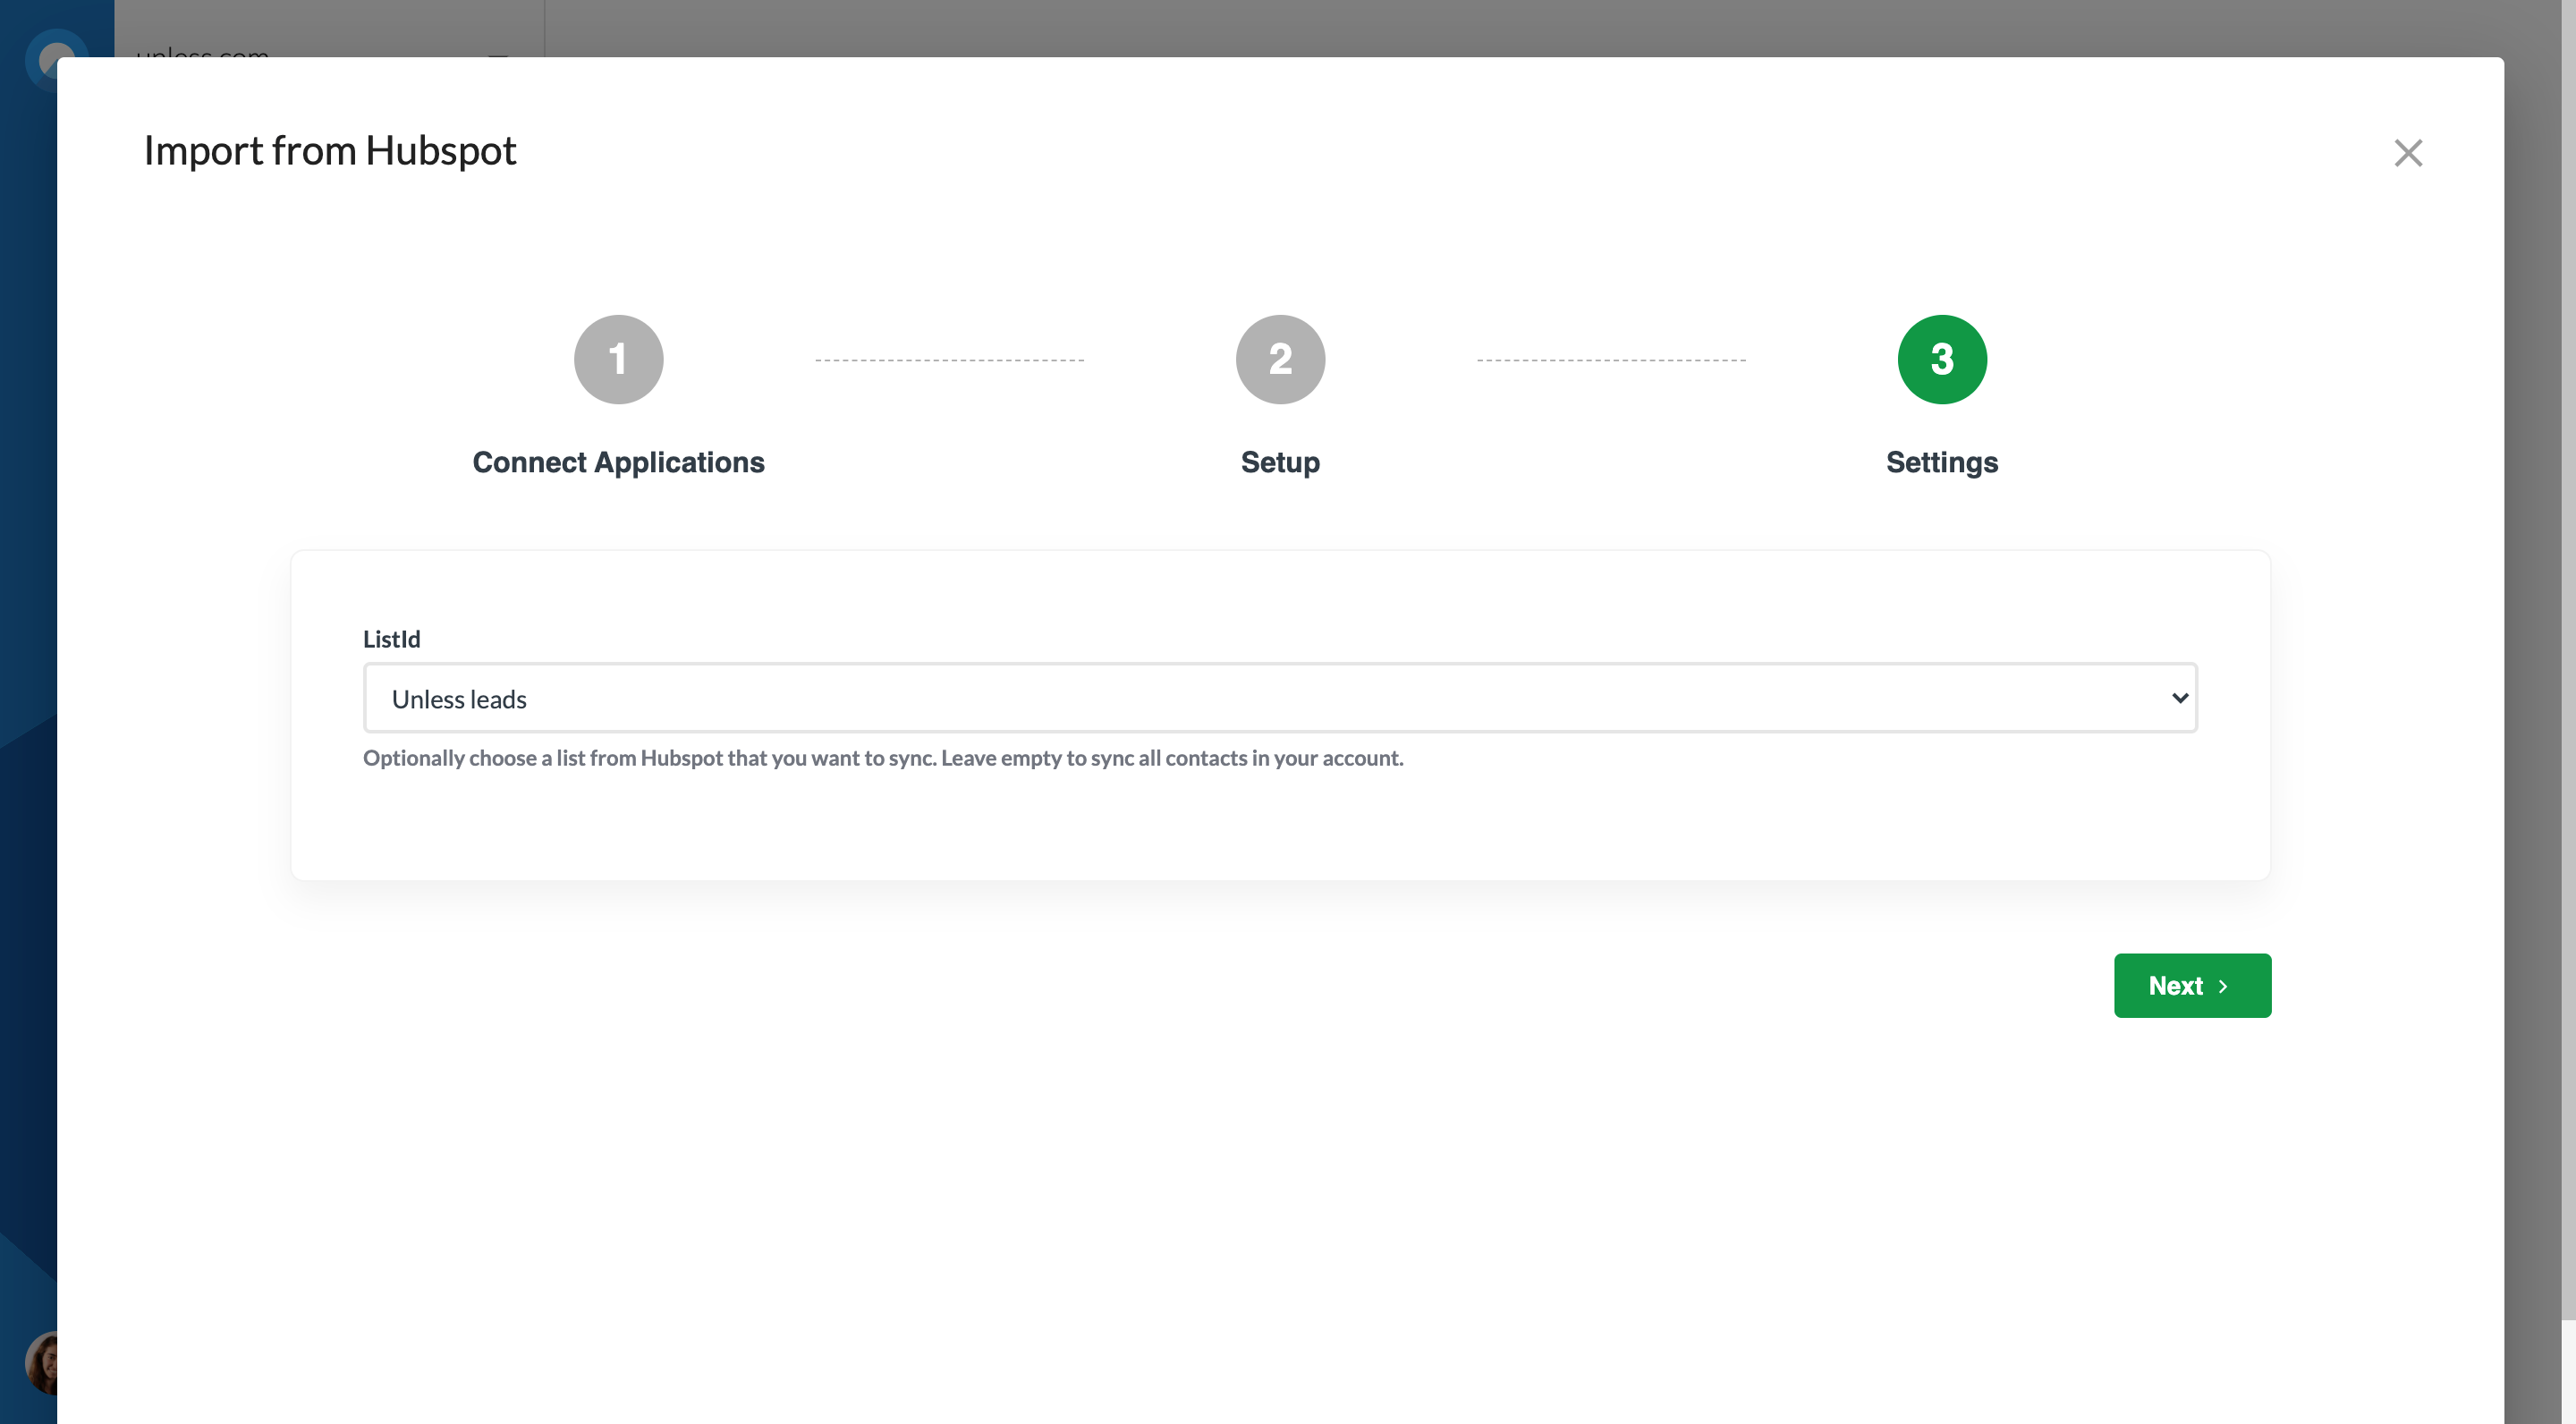 3-contacts-import-hubspot-settings